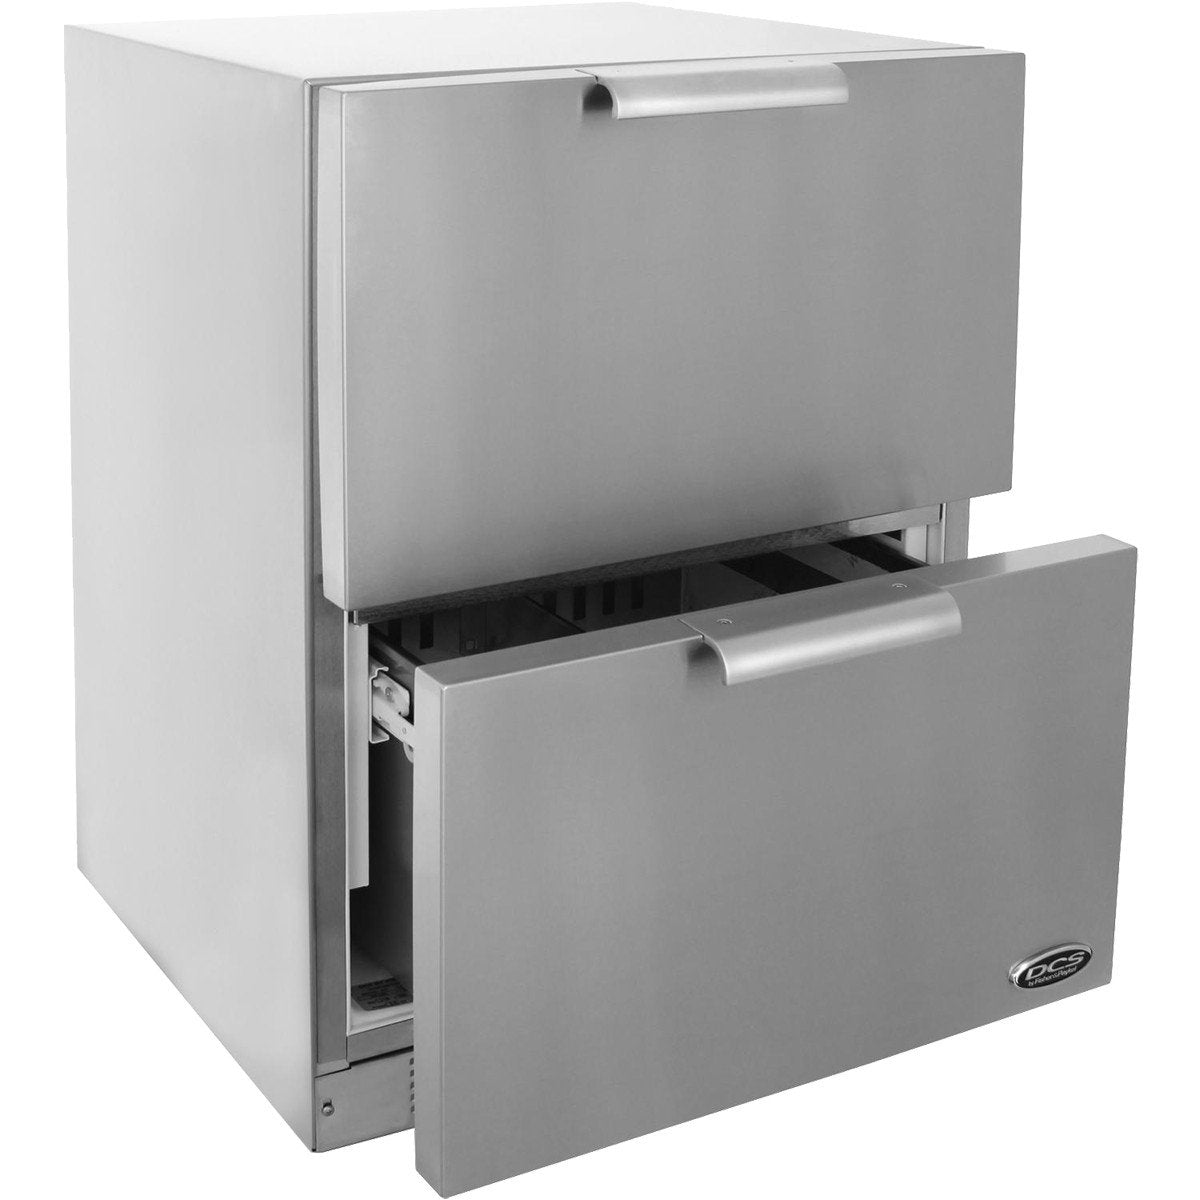 "DCS 24"" Outdoor Refrigerator Double Drawers"